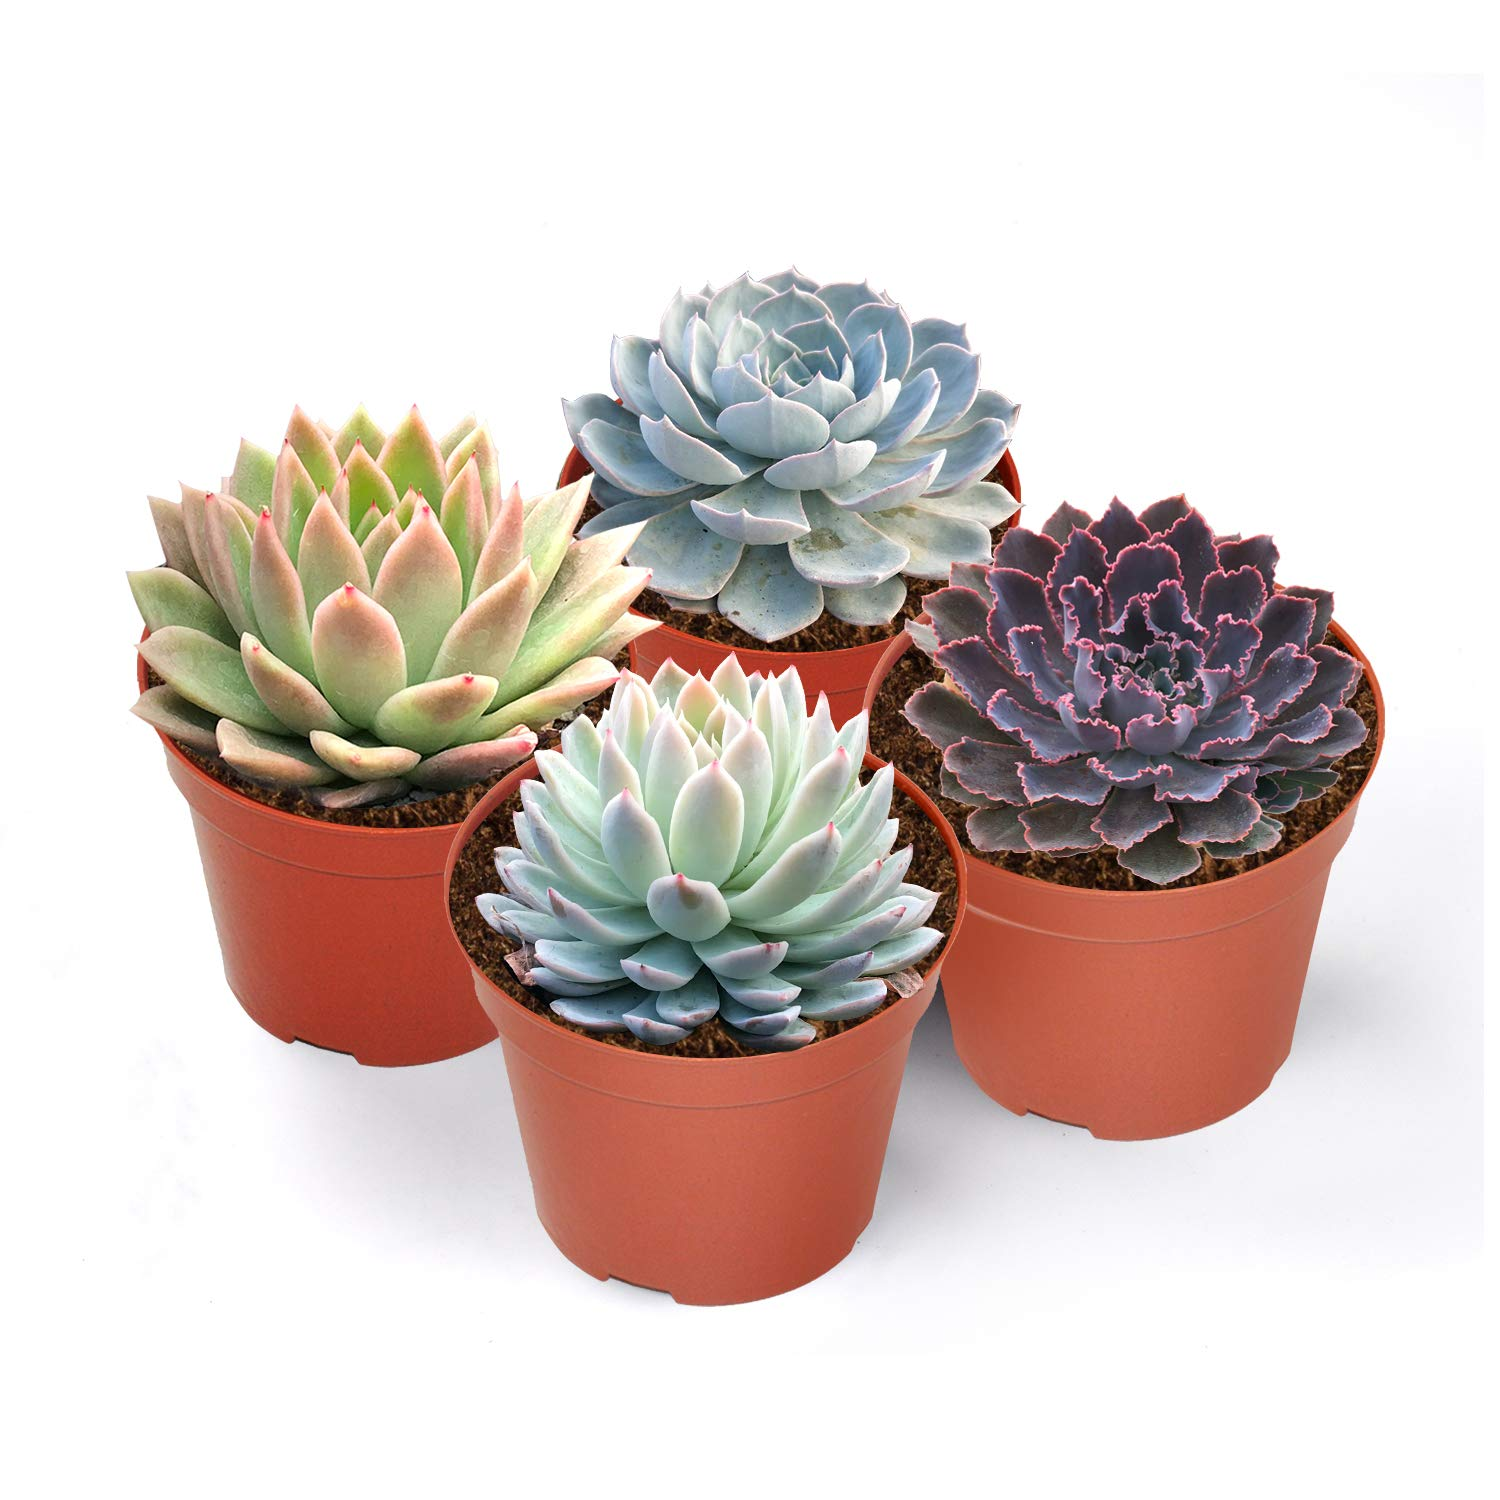 Premium Rosette Succulents, 4 Assorted Rooted Succulents in 4'' Planter Pots with Soil, Real Live Succulents Bonsai for Indoor Home Office Cactus Decor, Terrariums, Mini Garden